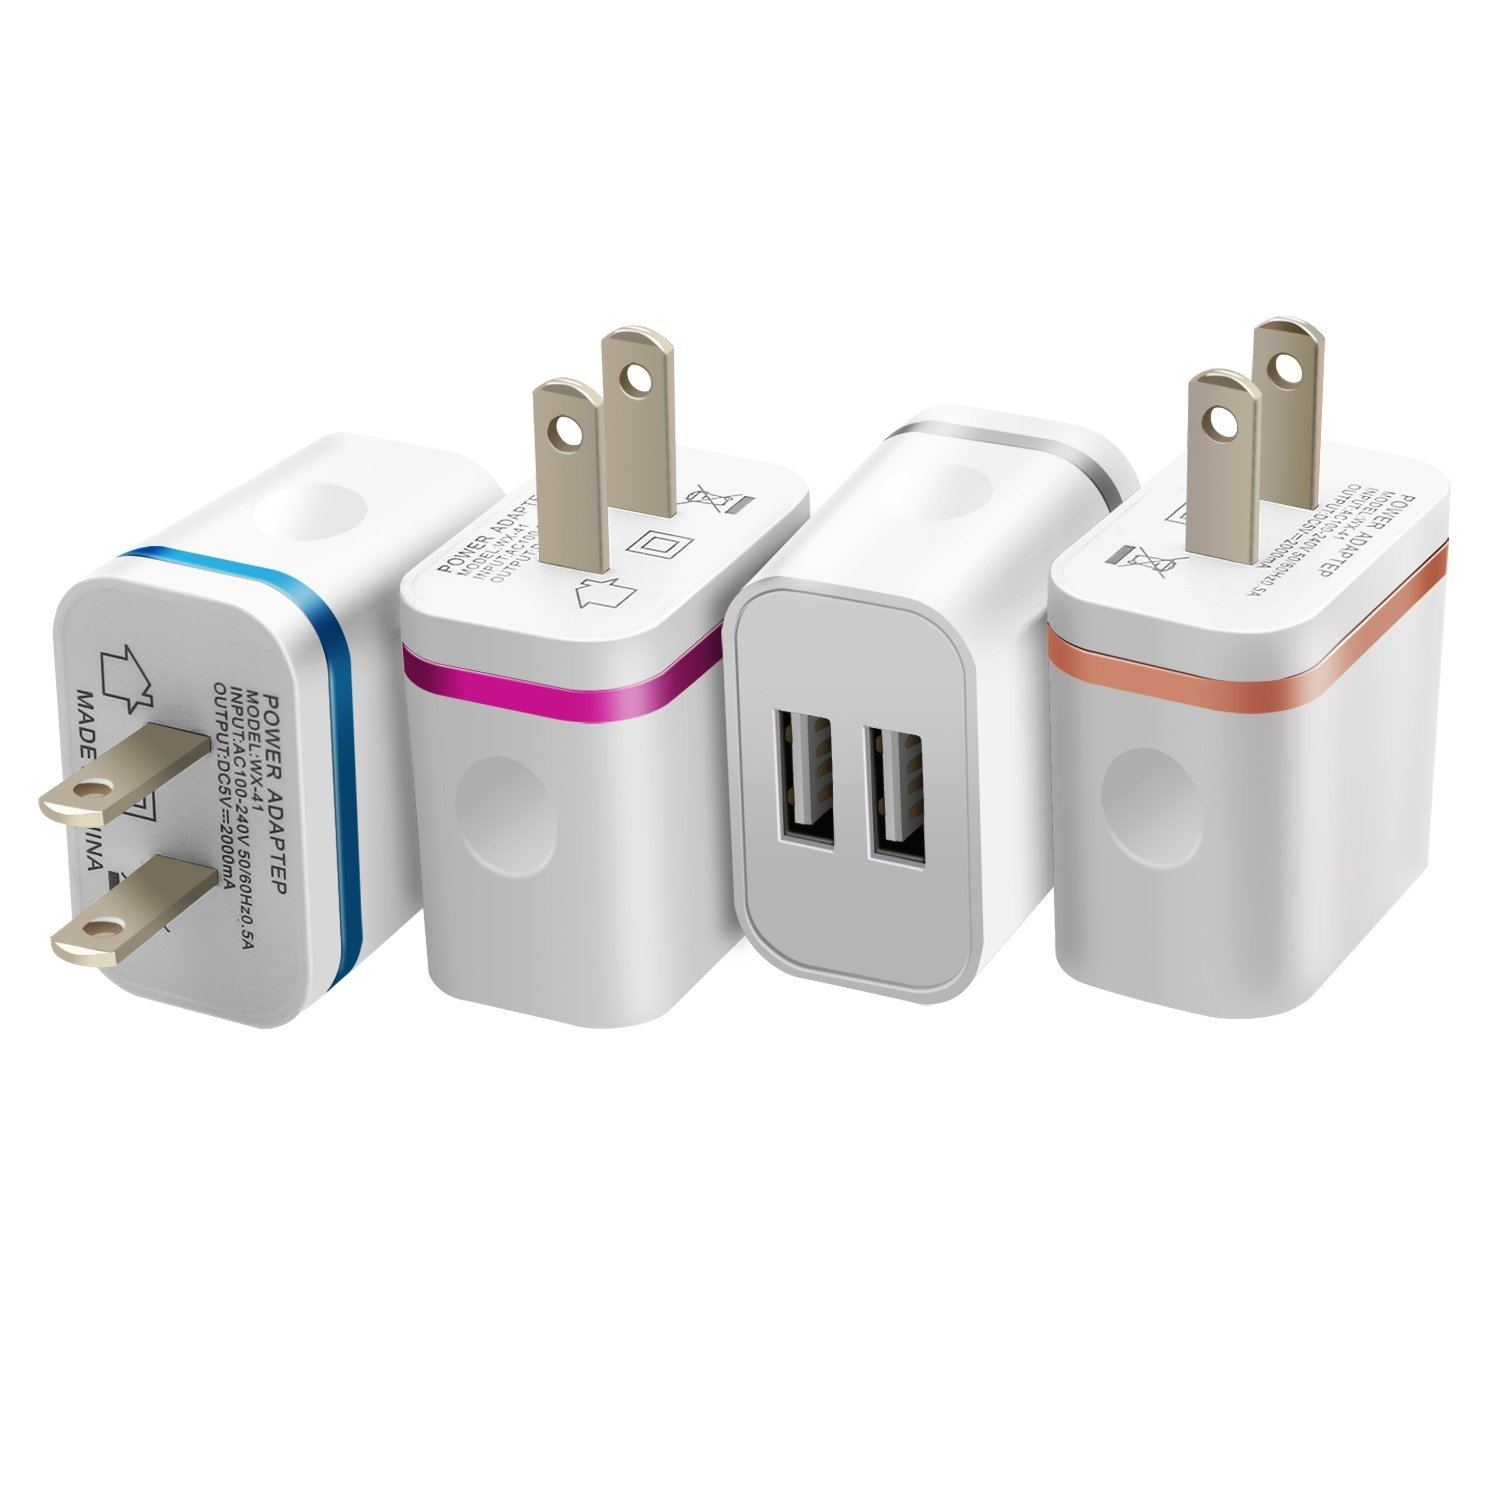 Costyle 4-Pack 5V/2.0Amp Dual USB 2-port Easy Grip Home Travel Wall Charger Adapter for iPhone X 8 7 SE 6s Plus, iPad Air Mini, Samsung Galaxy S8 S7 Note 8 6, Motorola, Sony -Gray Rose Gold Blue Rose